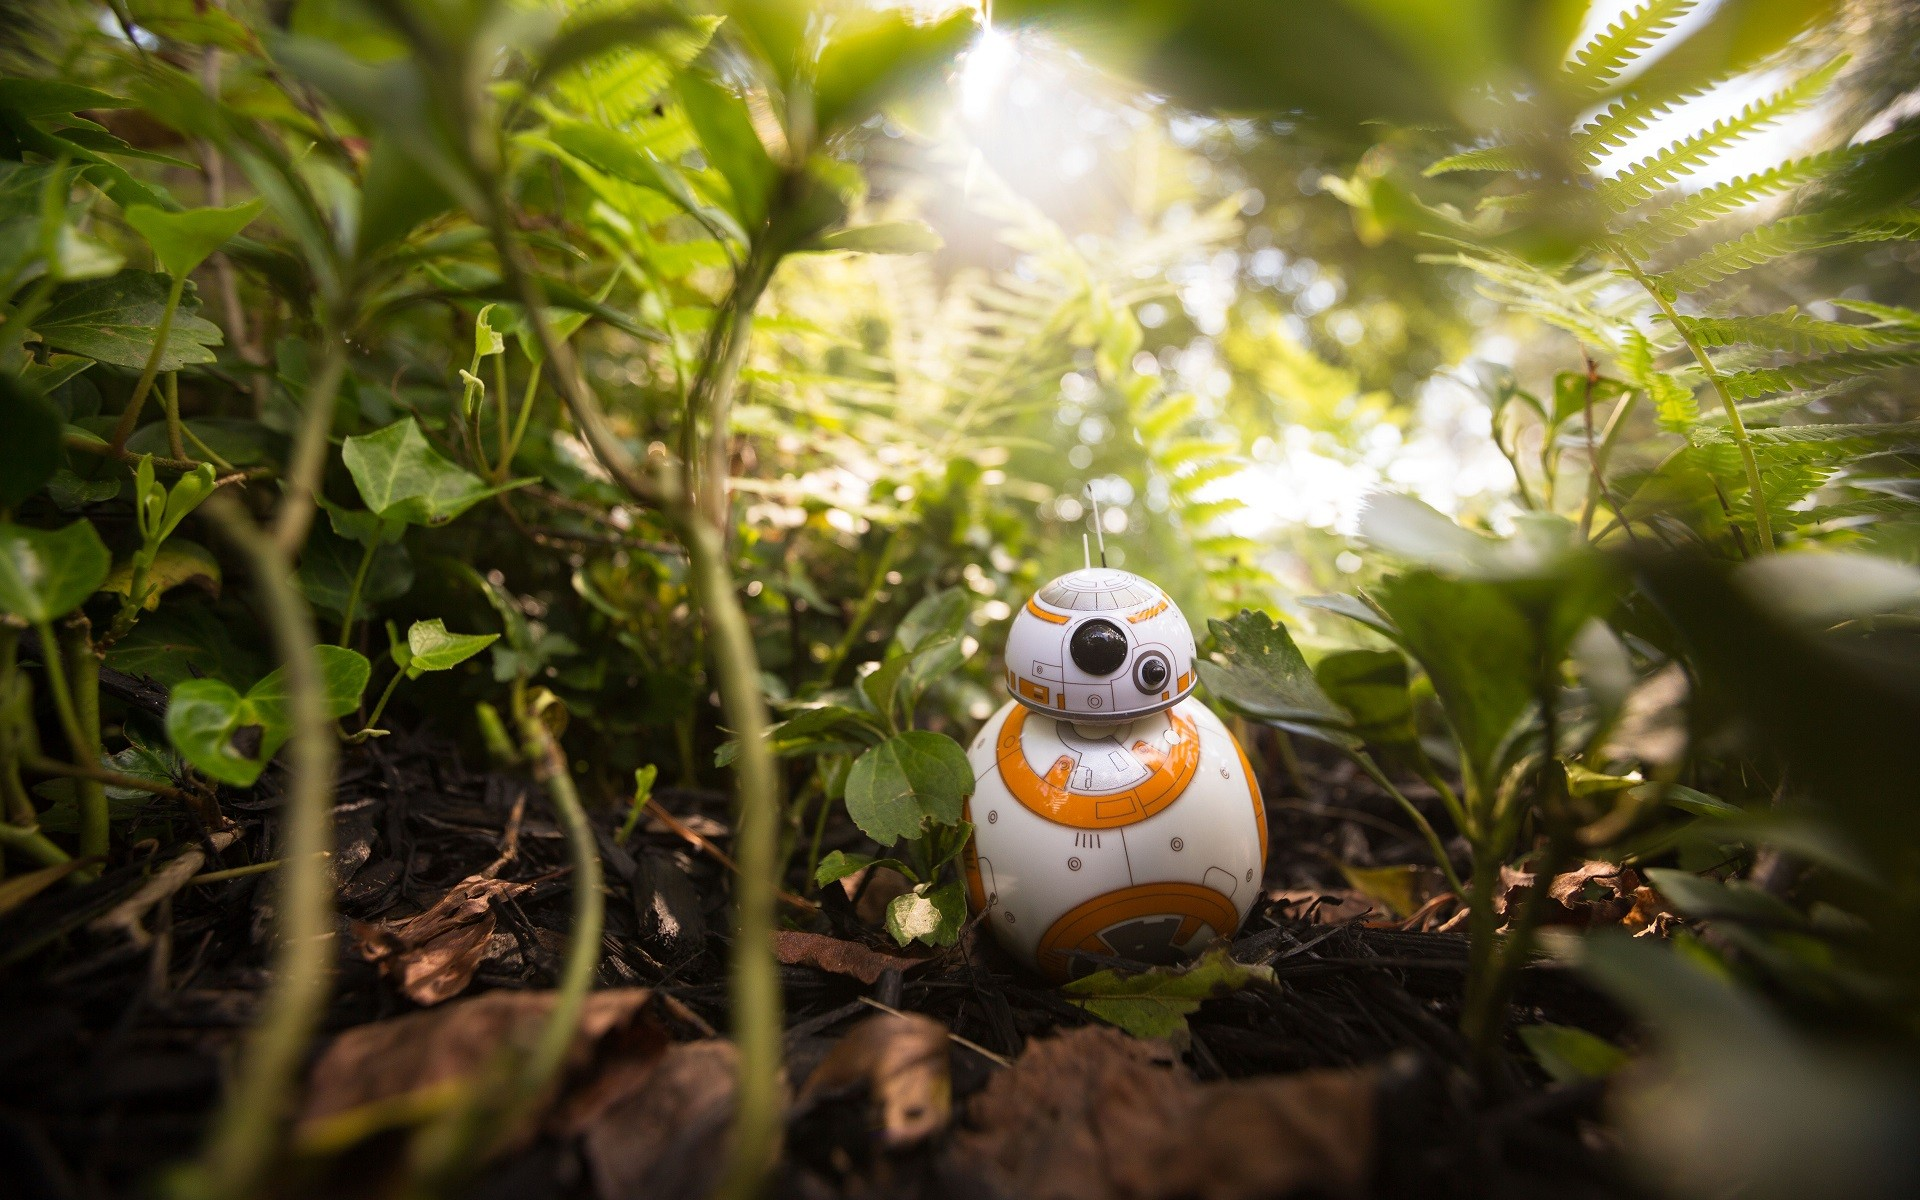 bb8 wallpaper hd - photo #31